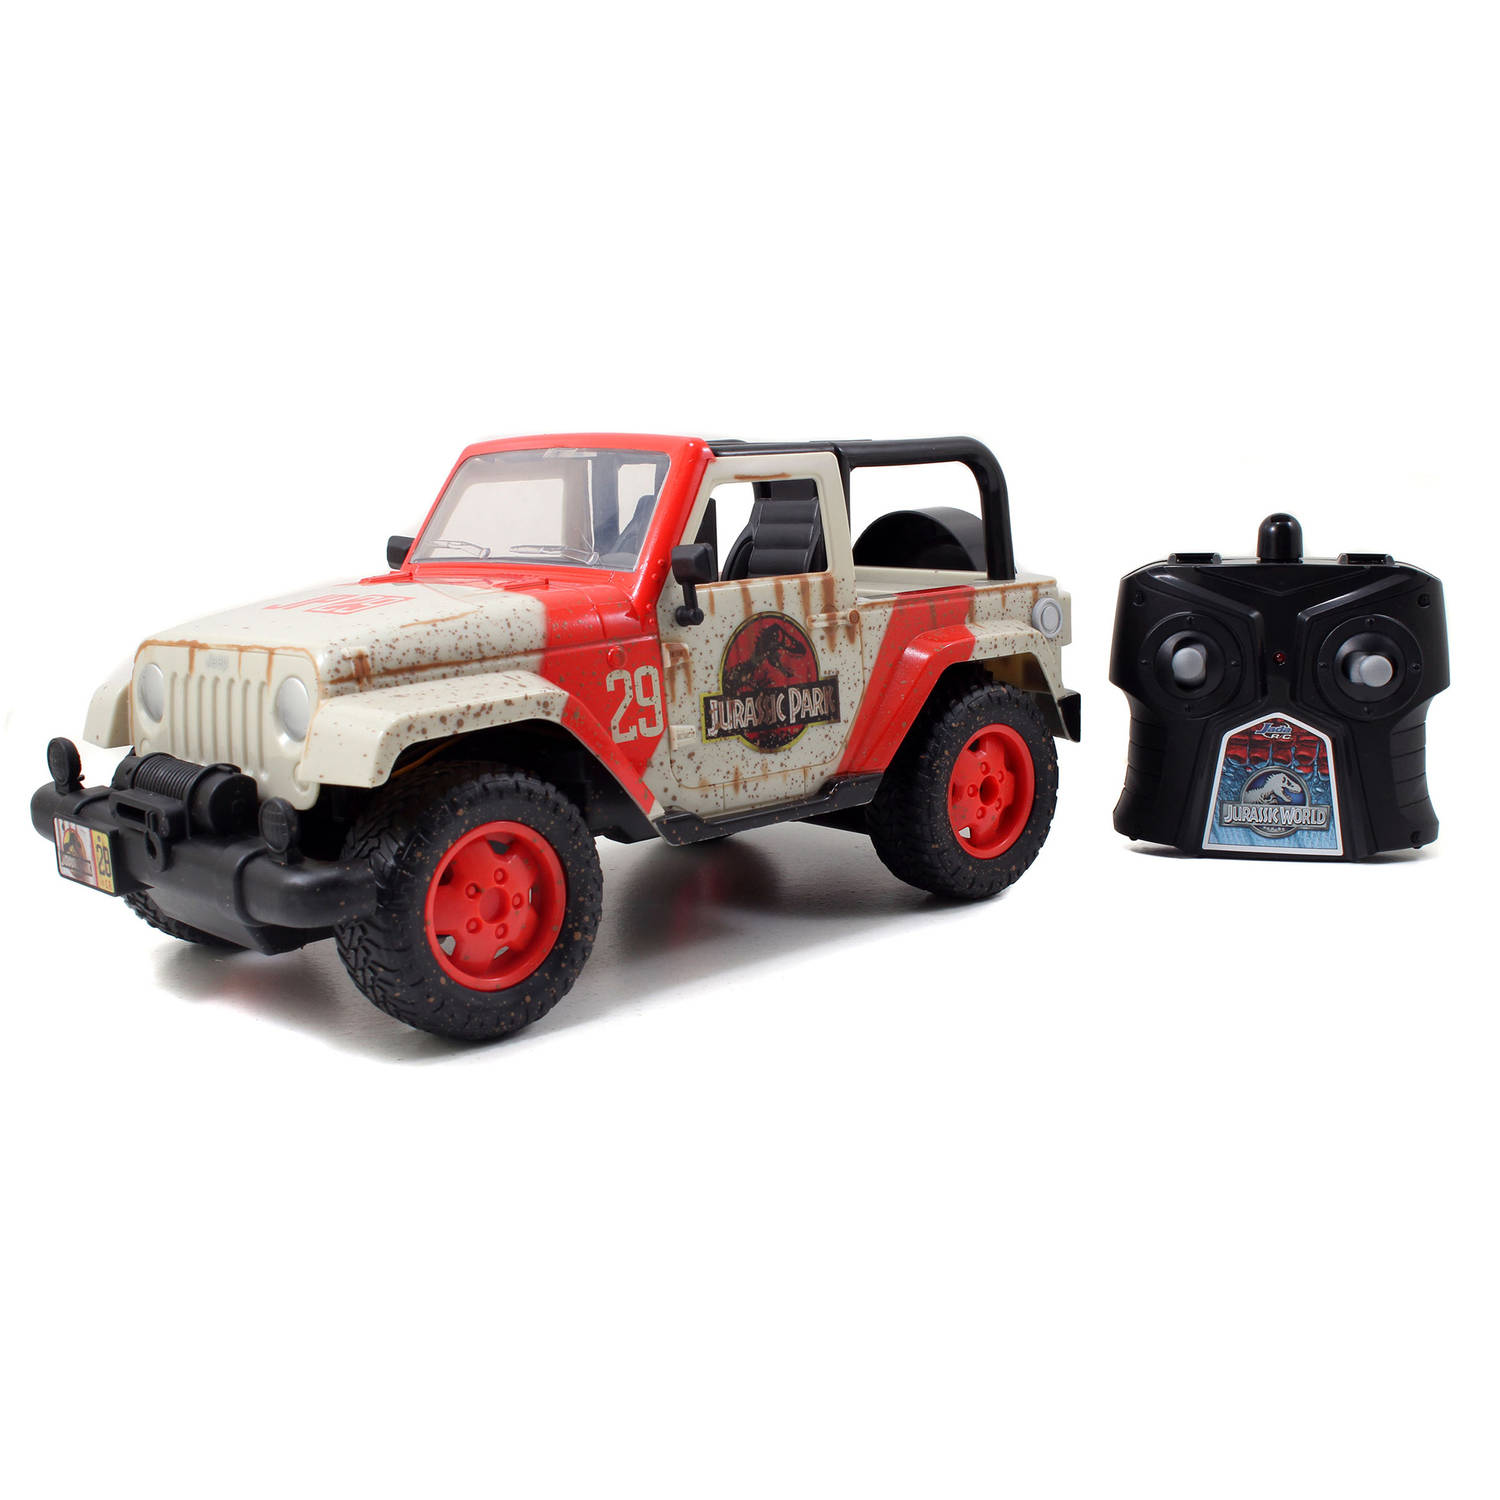 Jada Toys Jurassic World 1/16 Scale Remote Control Jeep